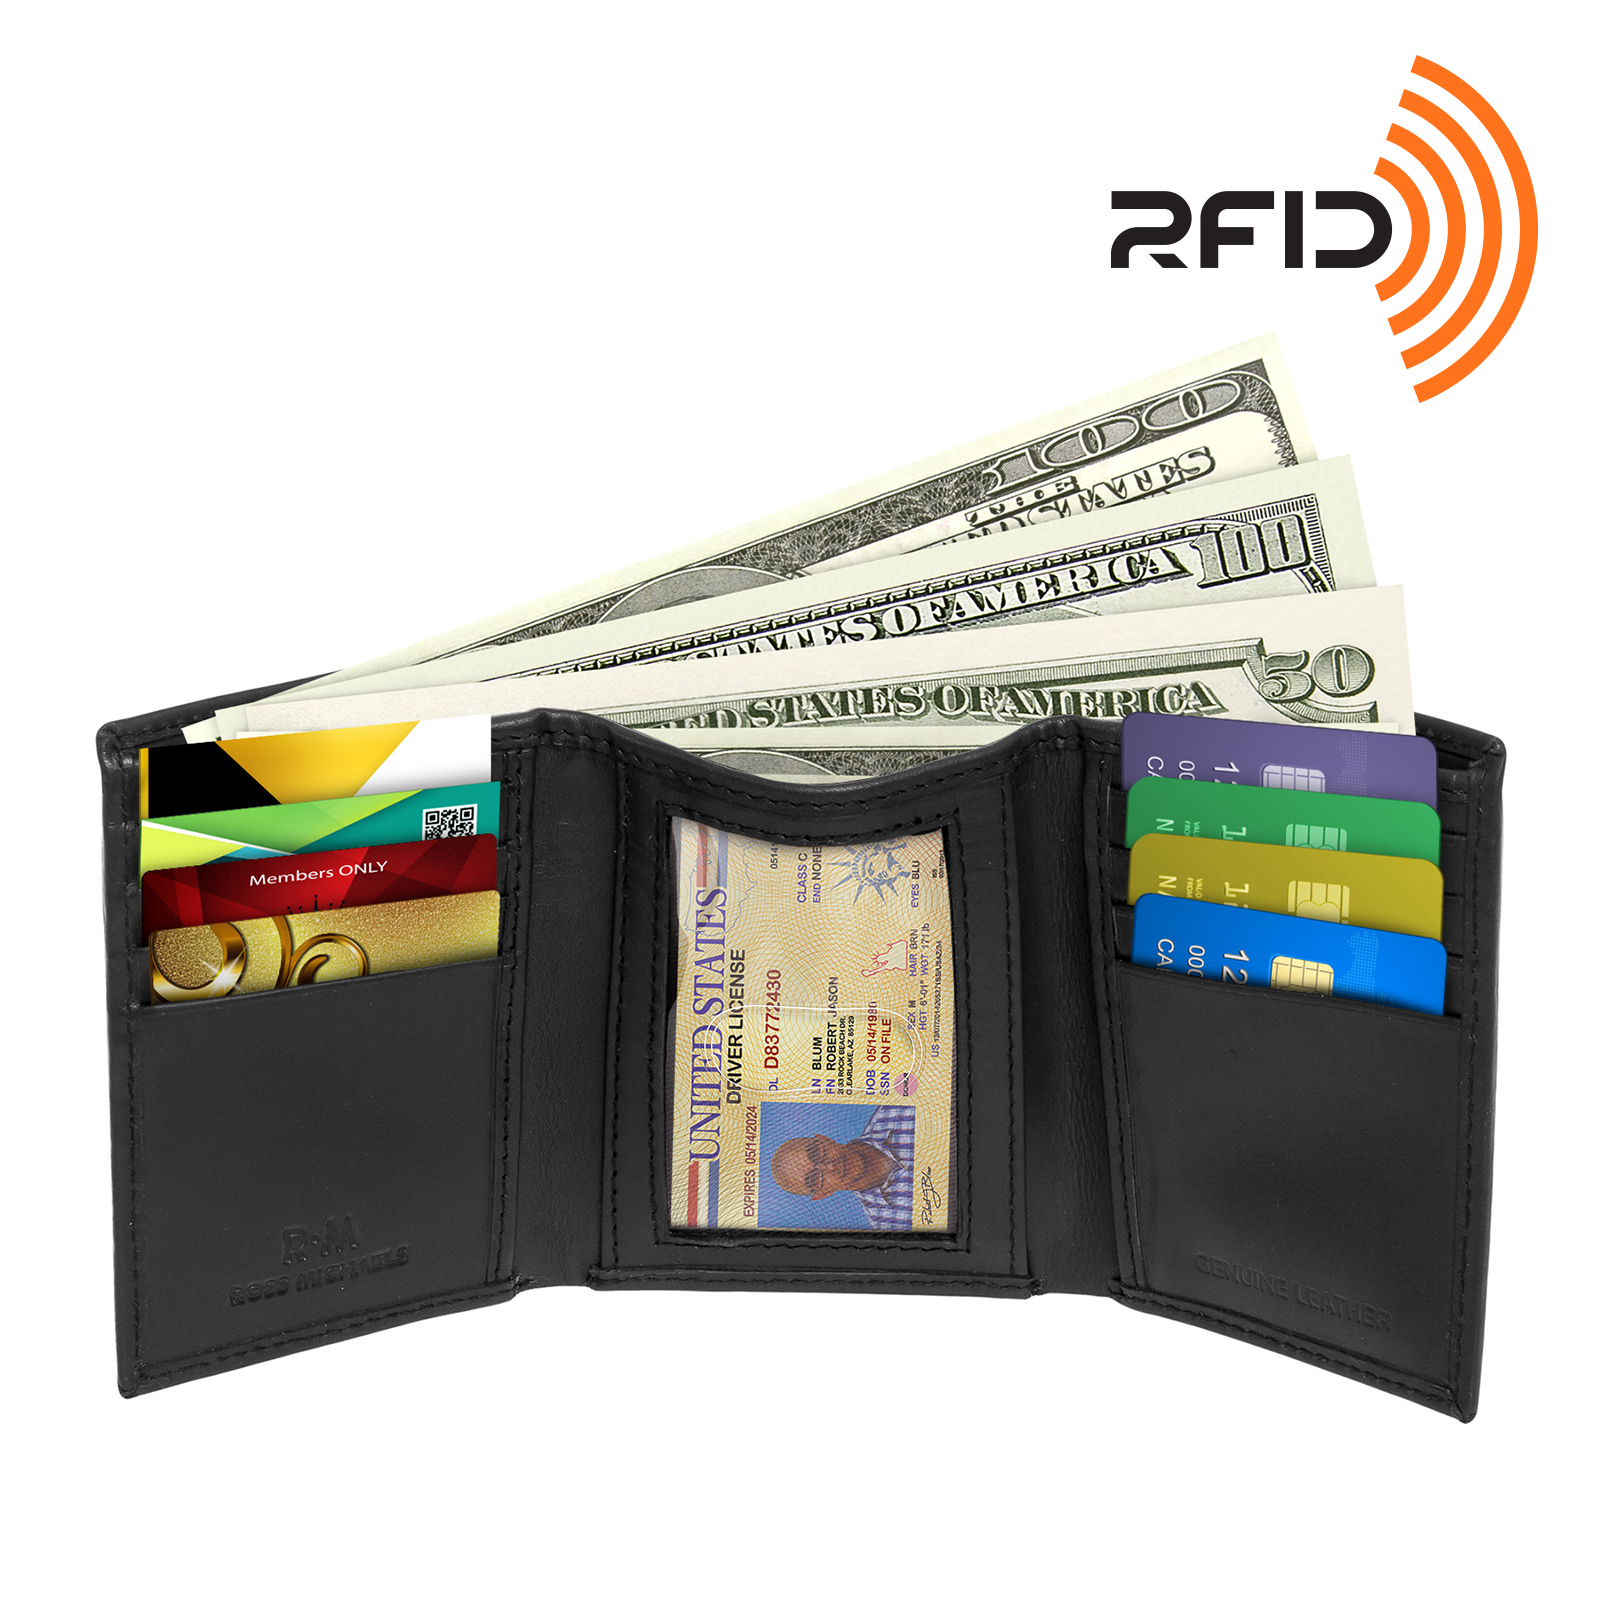 NEW Black RFID Blocking Genuine Leather Trifold Wallet by Ross Michaels for Men